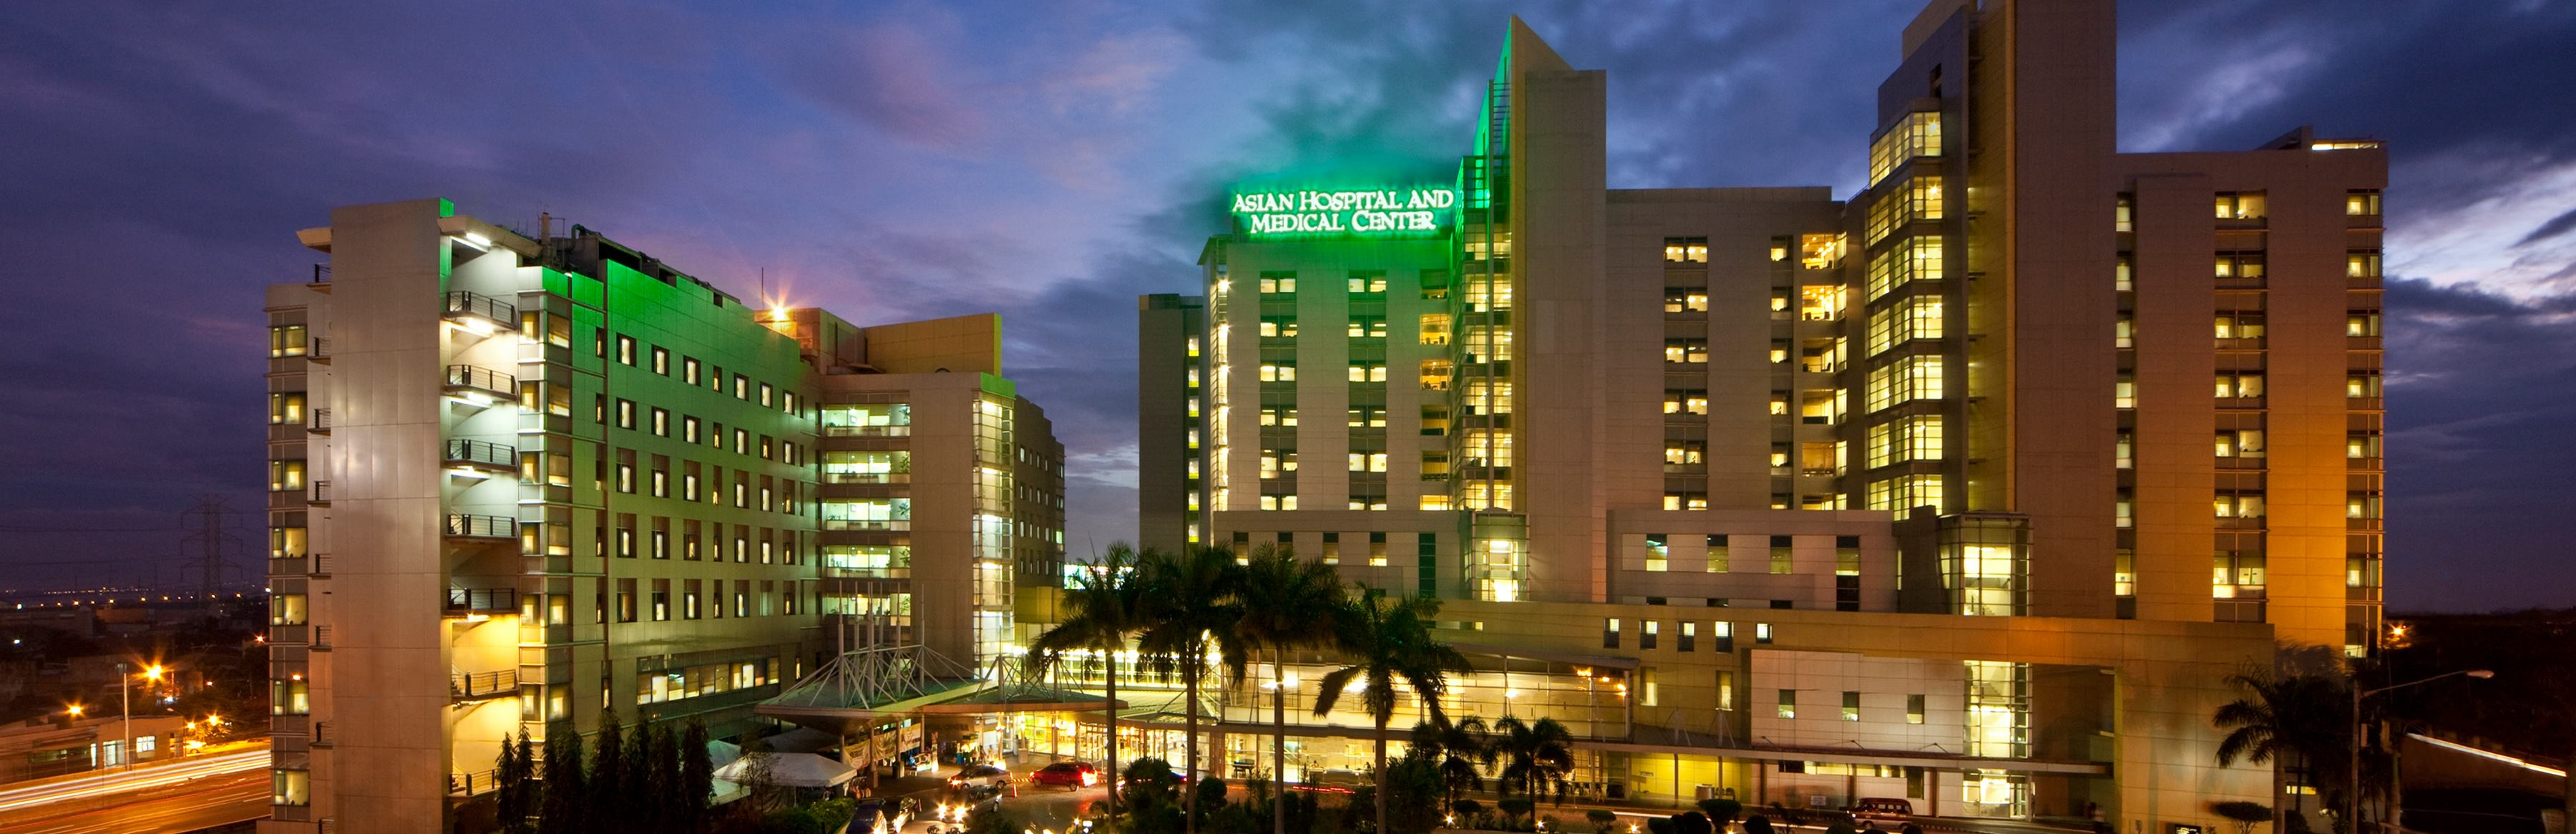 Asian Hospital, one of the best hospitals in the Philippines.